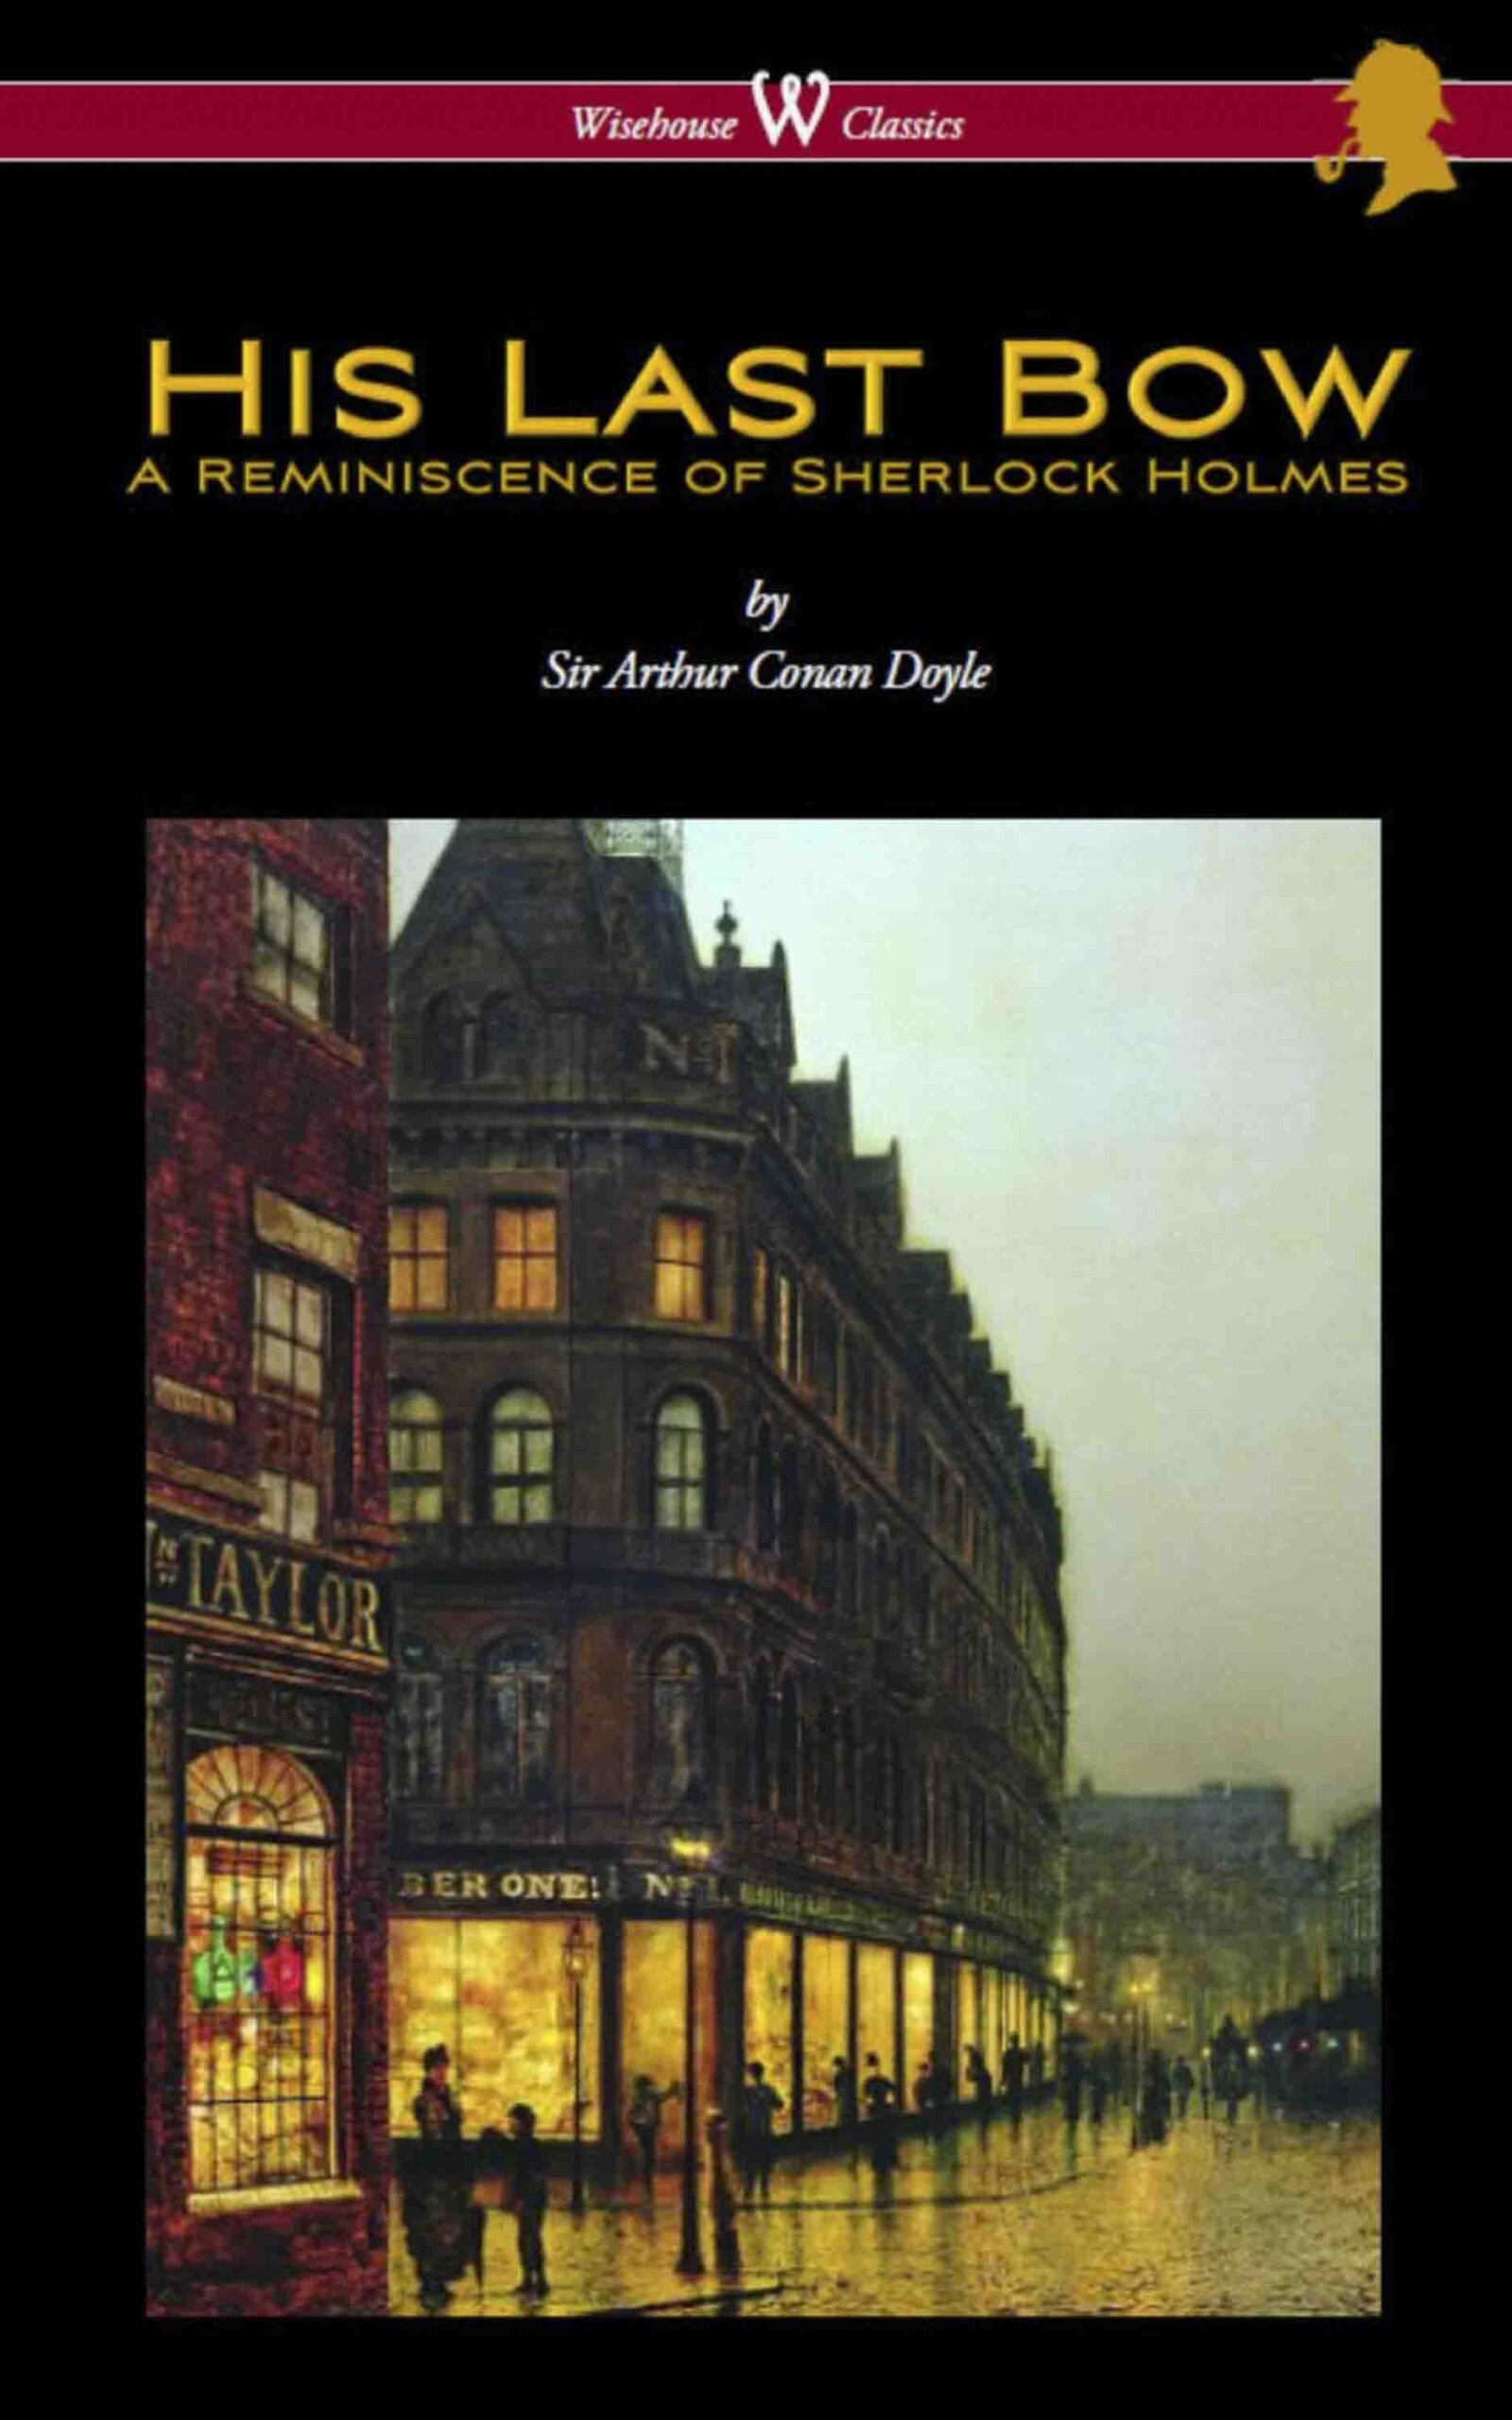 His Last Bow: A Reminiscence of Sherlock Holmes (Wisehouse Classics Edition – with original illustrations)